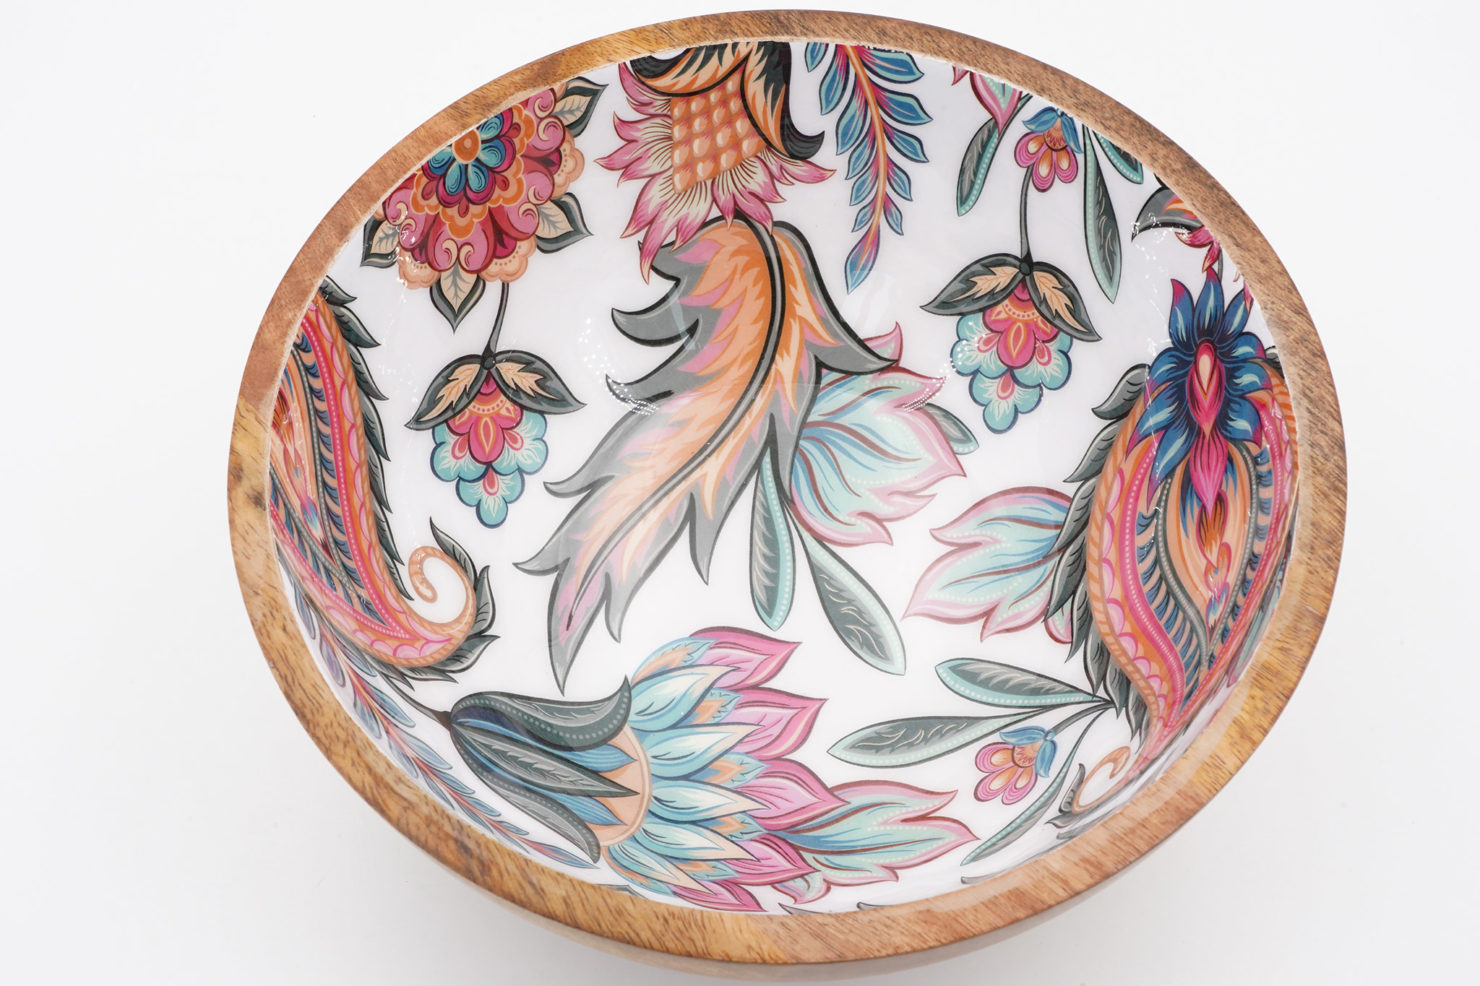 BOWL PAISLEY PALE MANGO WOOD 25 CM - BY ROOM